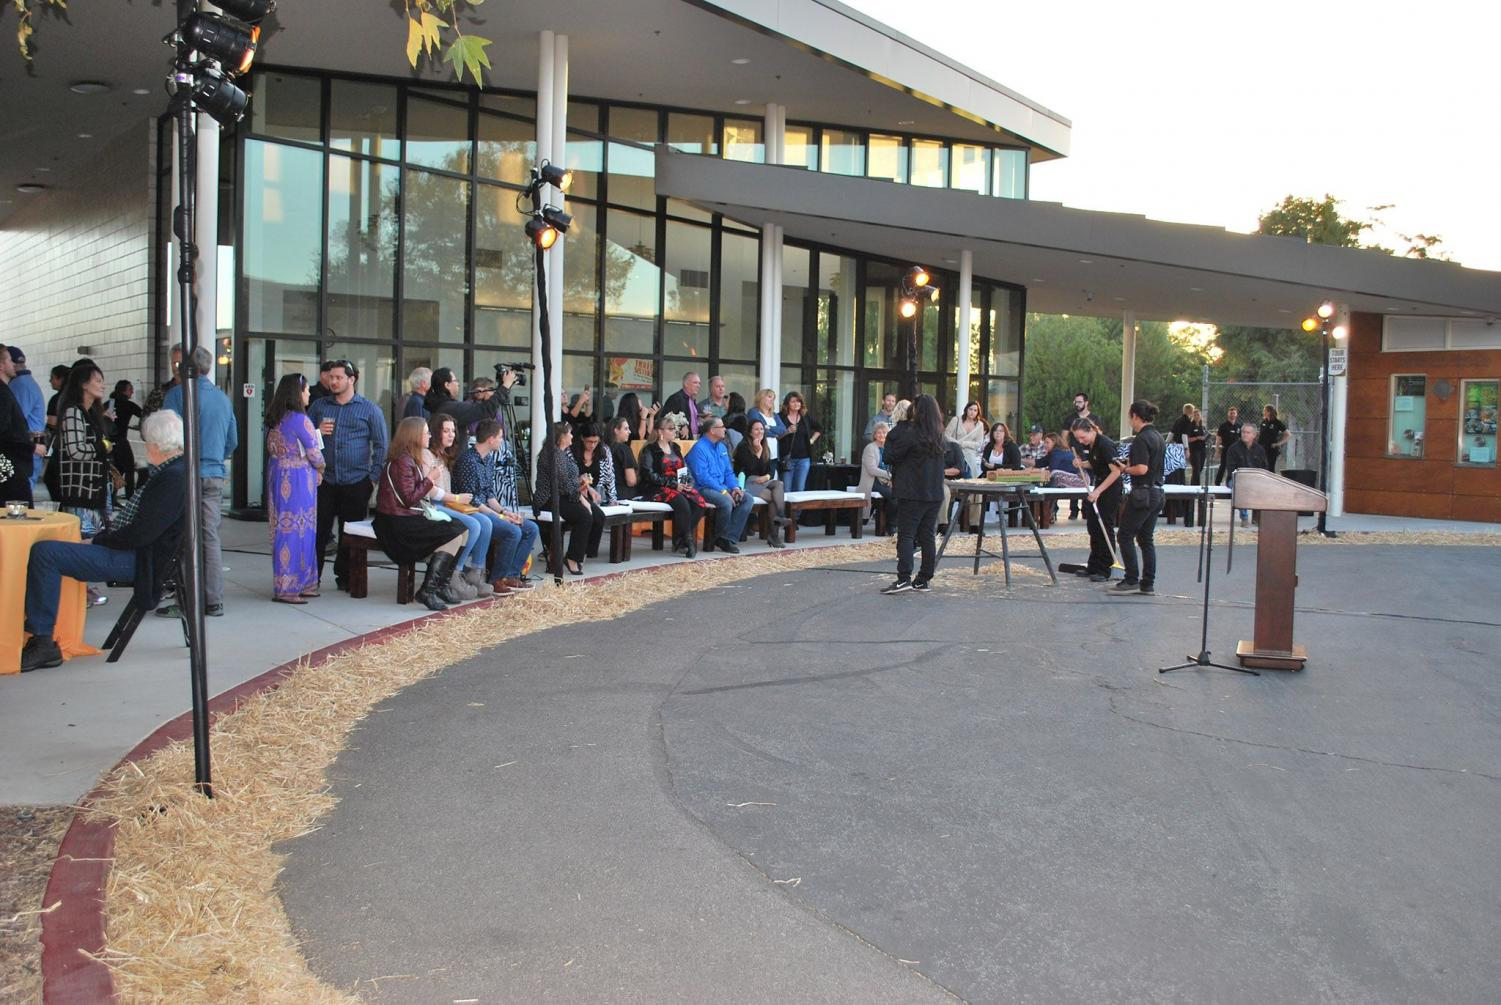 Attendants of the 2018 Rendezvous at the Zoo gather around a speaker during the festivities. Image provided by Ventura County Community College District.